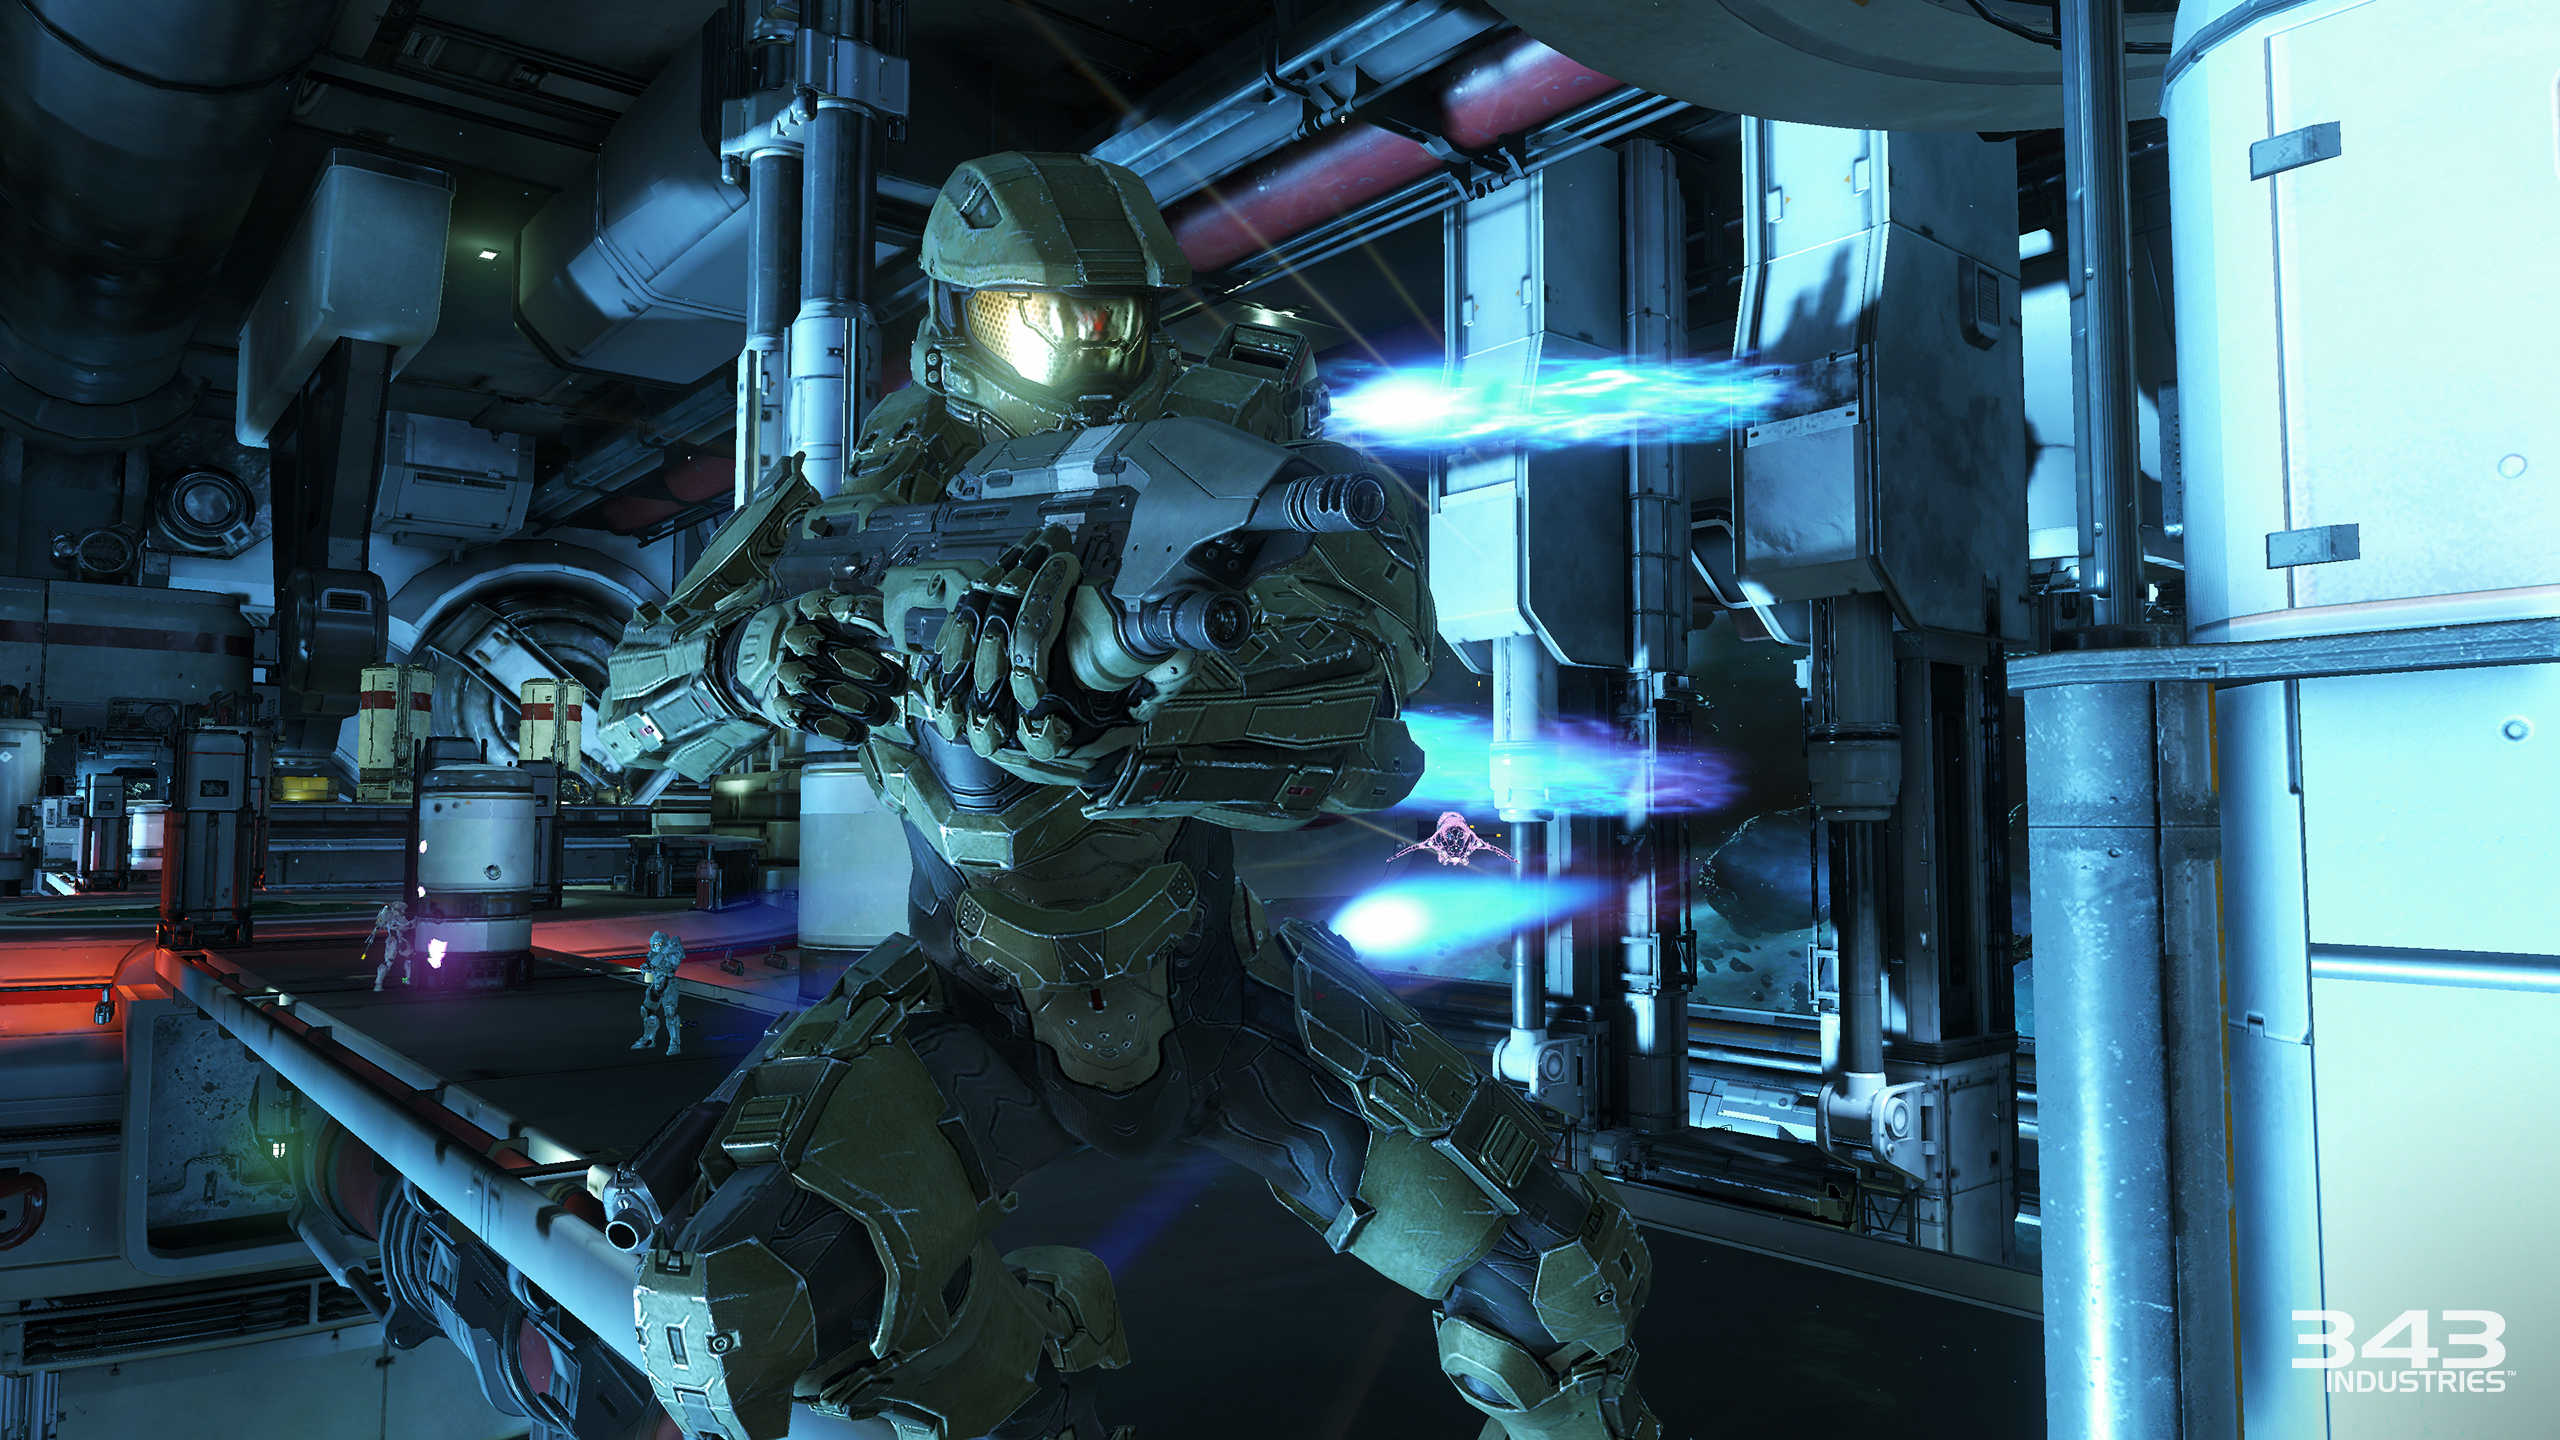 Halo 5: Guardians (XO) - the Chief is now a cameo in his own game